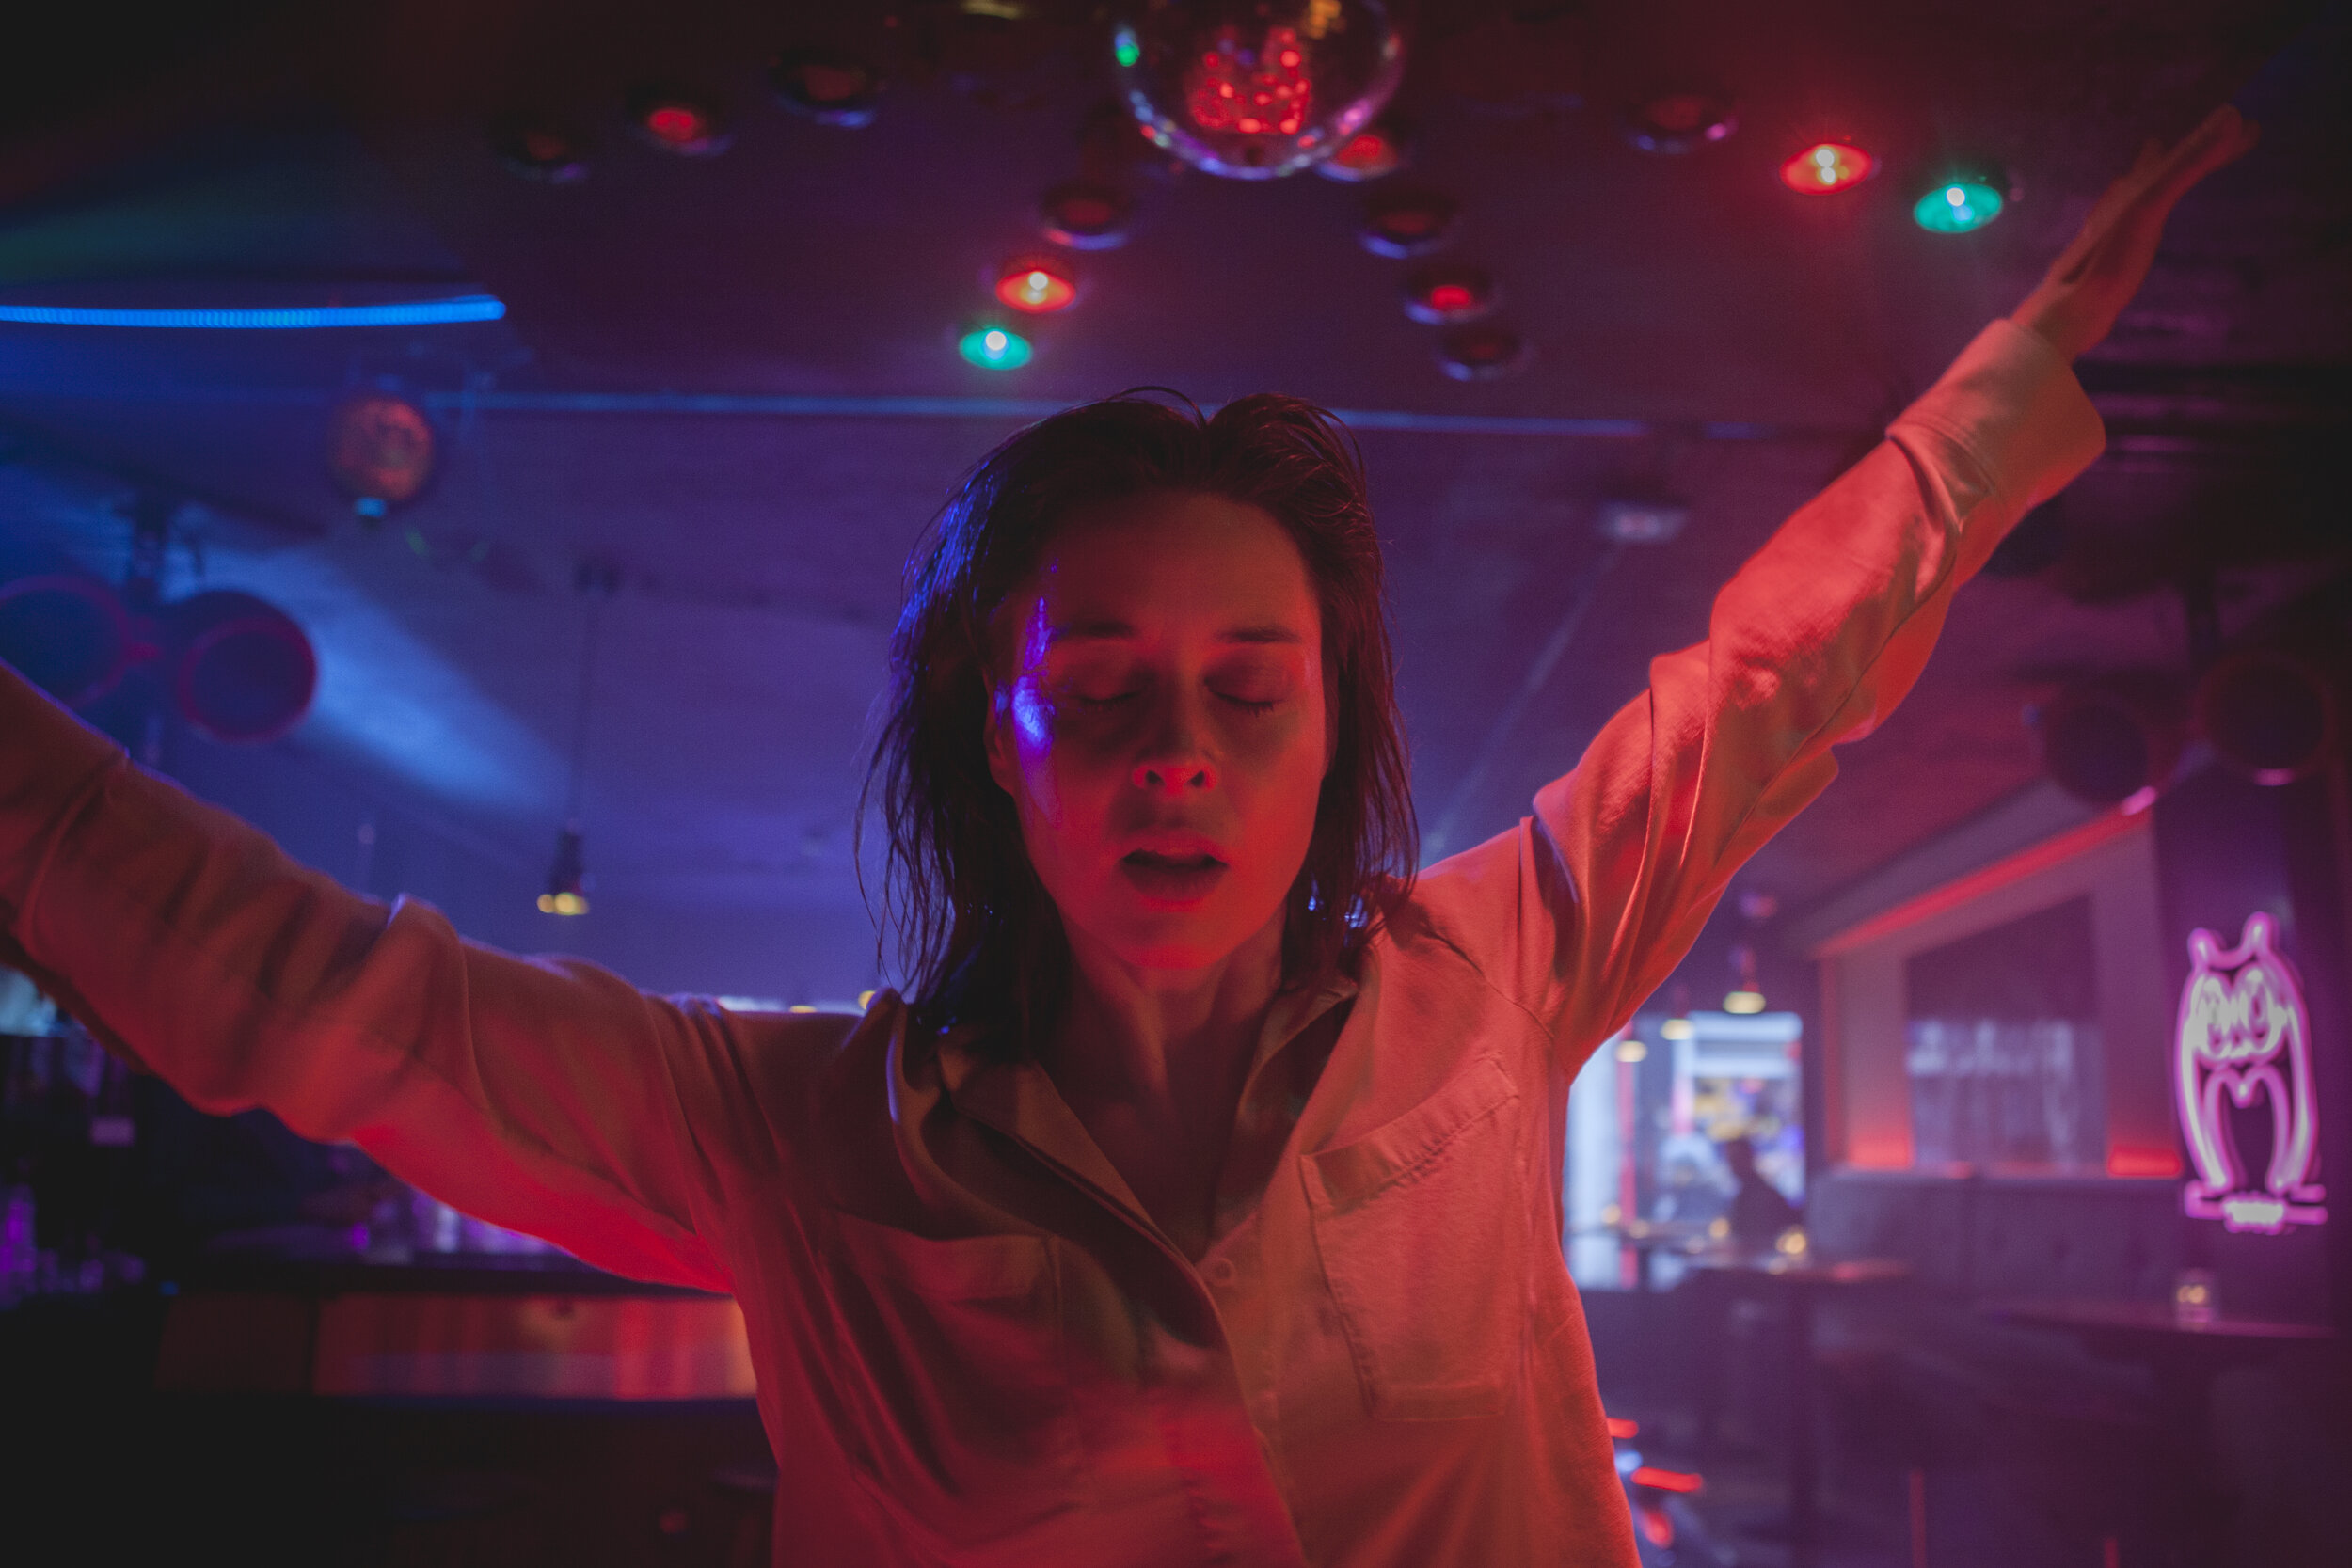 Bloody Marie ready for USA release! - Uncork'd Entertainment is releasing the Dutch action-drama Bloody Marie in the USA on the 1st of November. The film will be presented with English subtitles, and will have a run in selected theaters.